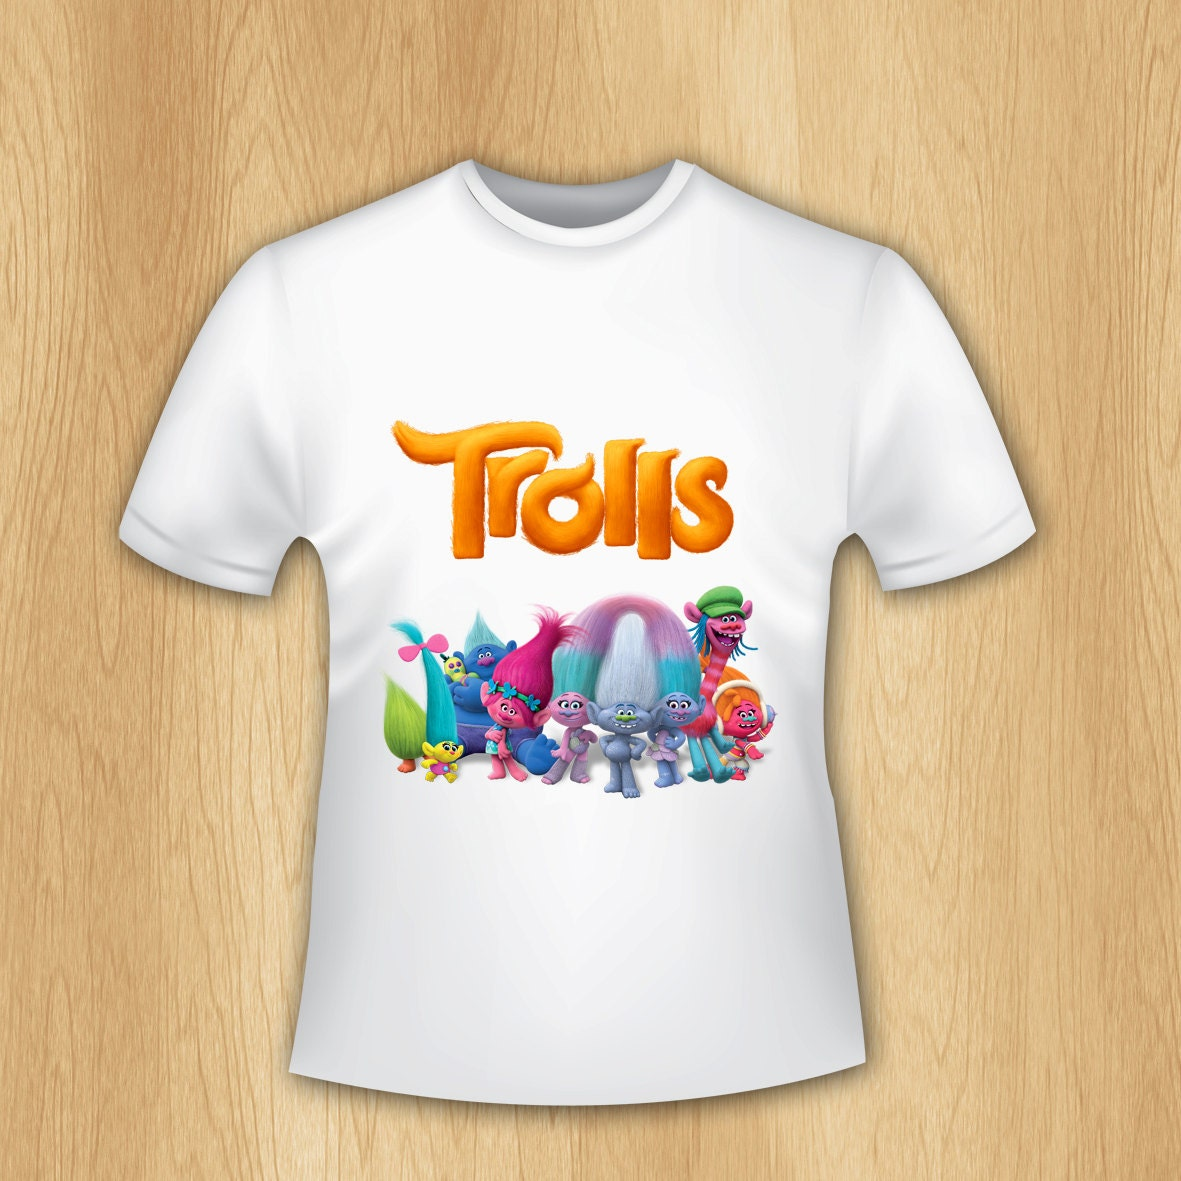 Design your own t-shirt iron on transfer - Trolls Iron On Transfer Trolls T Shirt Transfer Trolls Printable Iron On Trolls T Shirt Iron On Transfer Personalized Only File